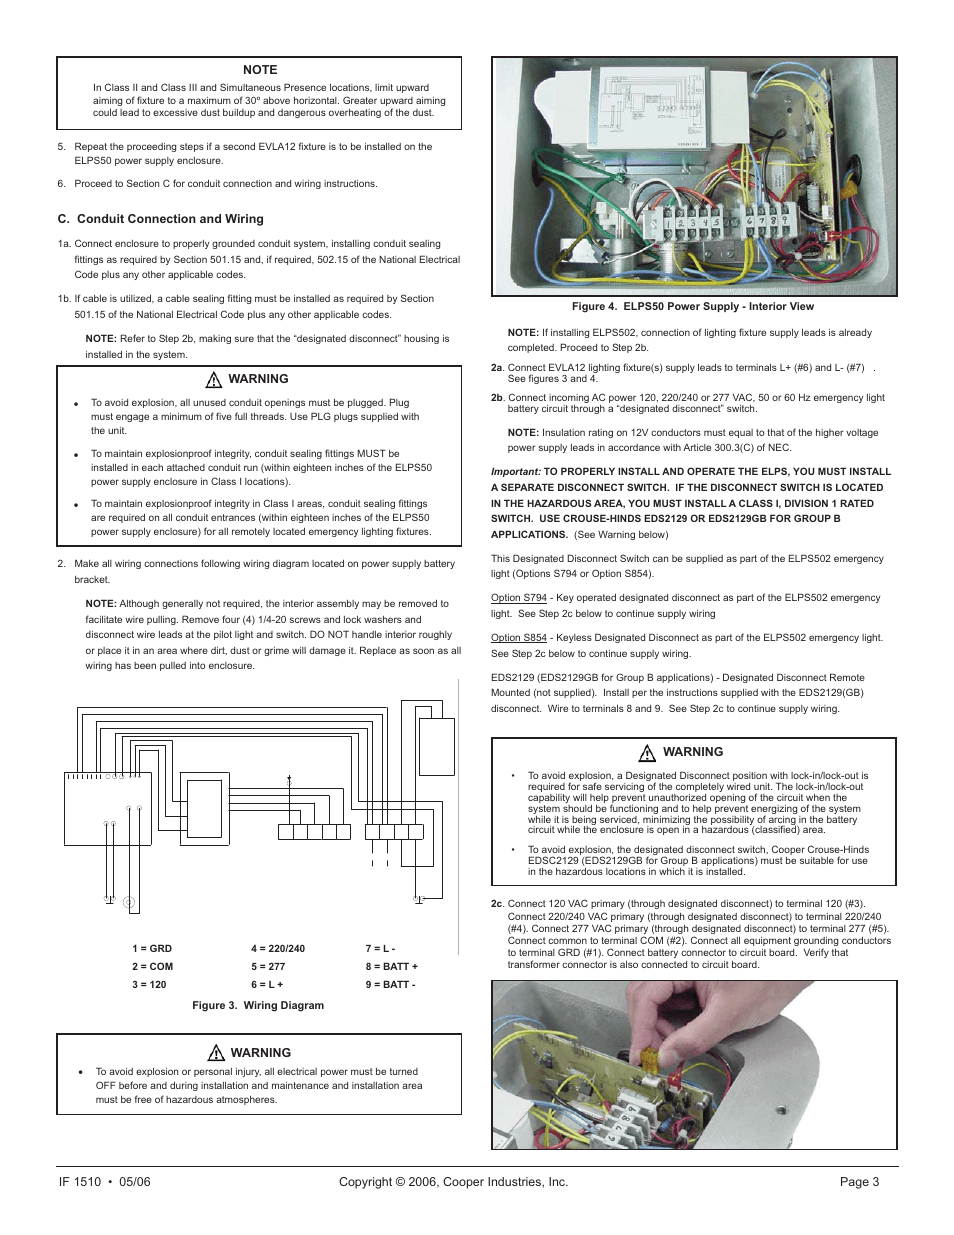 medium resolution of c conduit connection and wiring warning cooper lighting elps502 user manual page 3 24